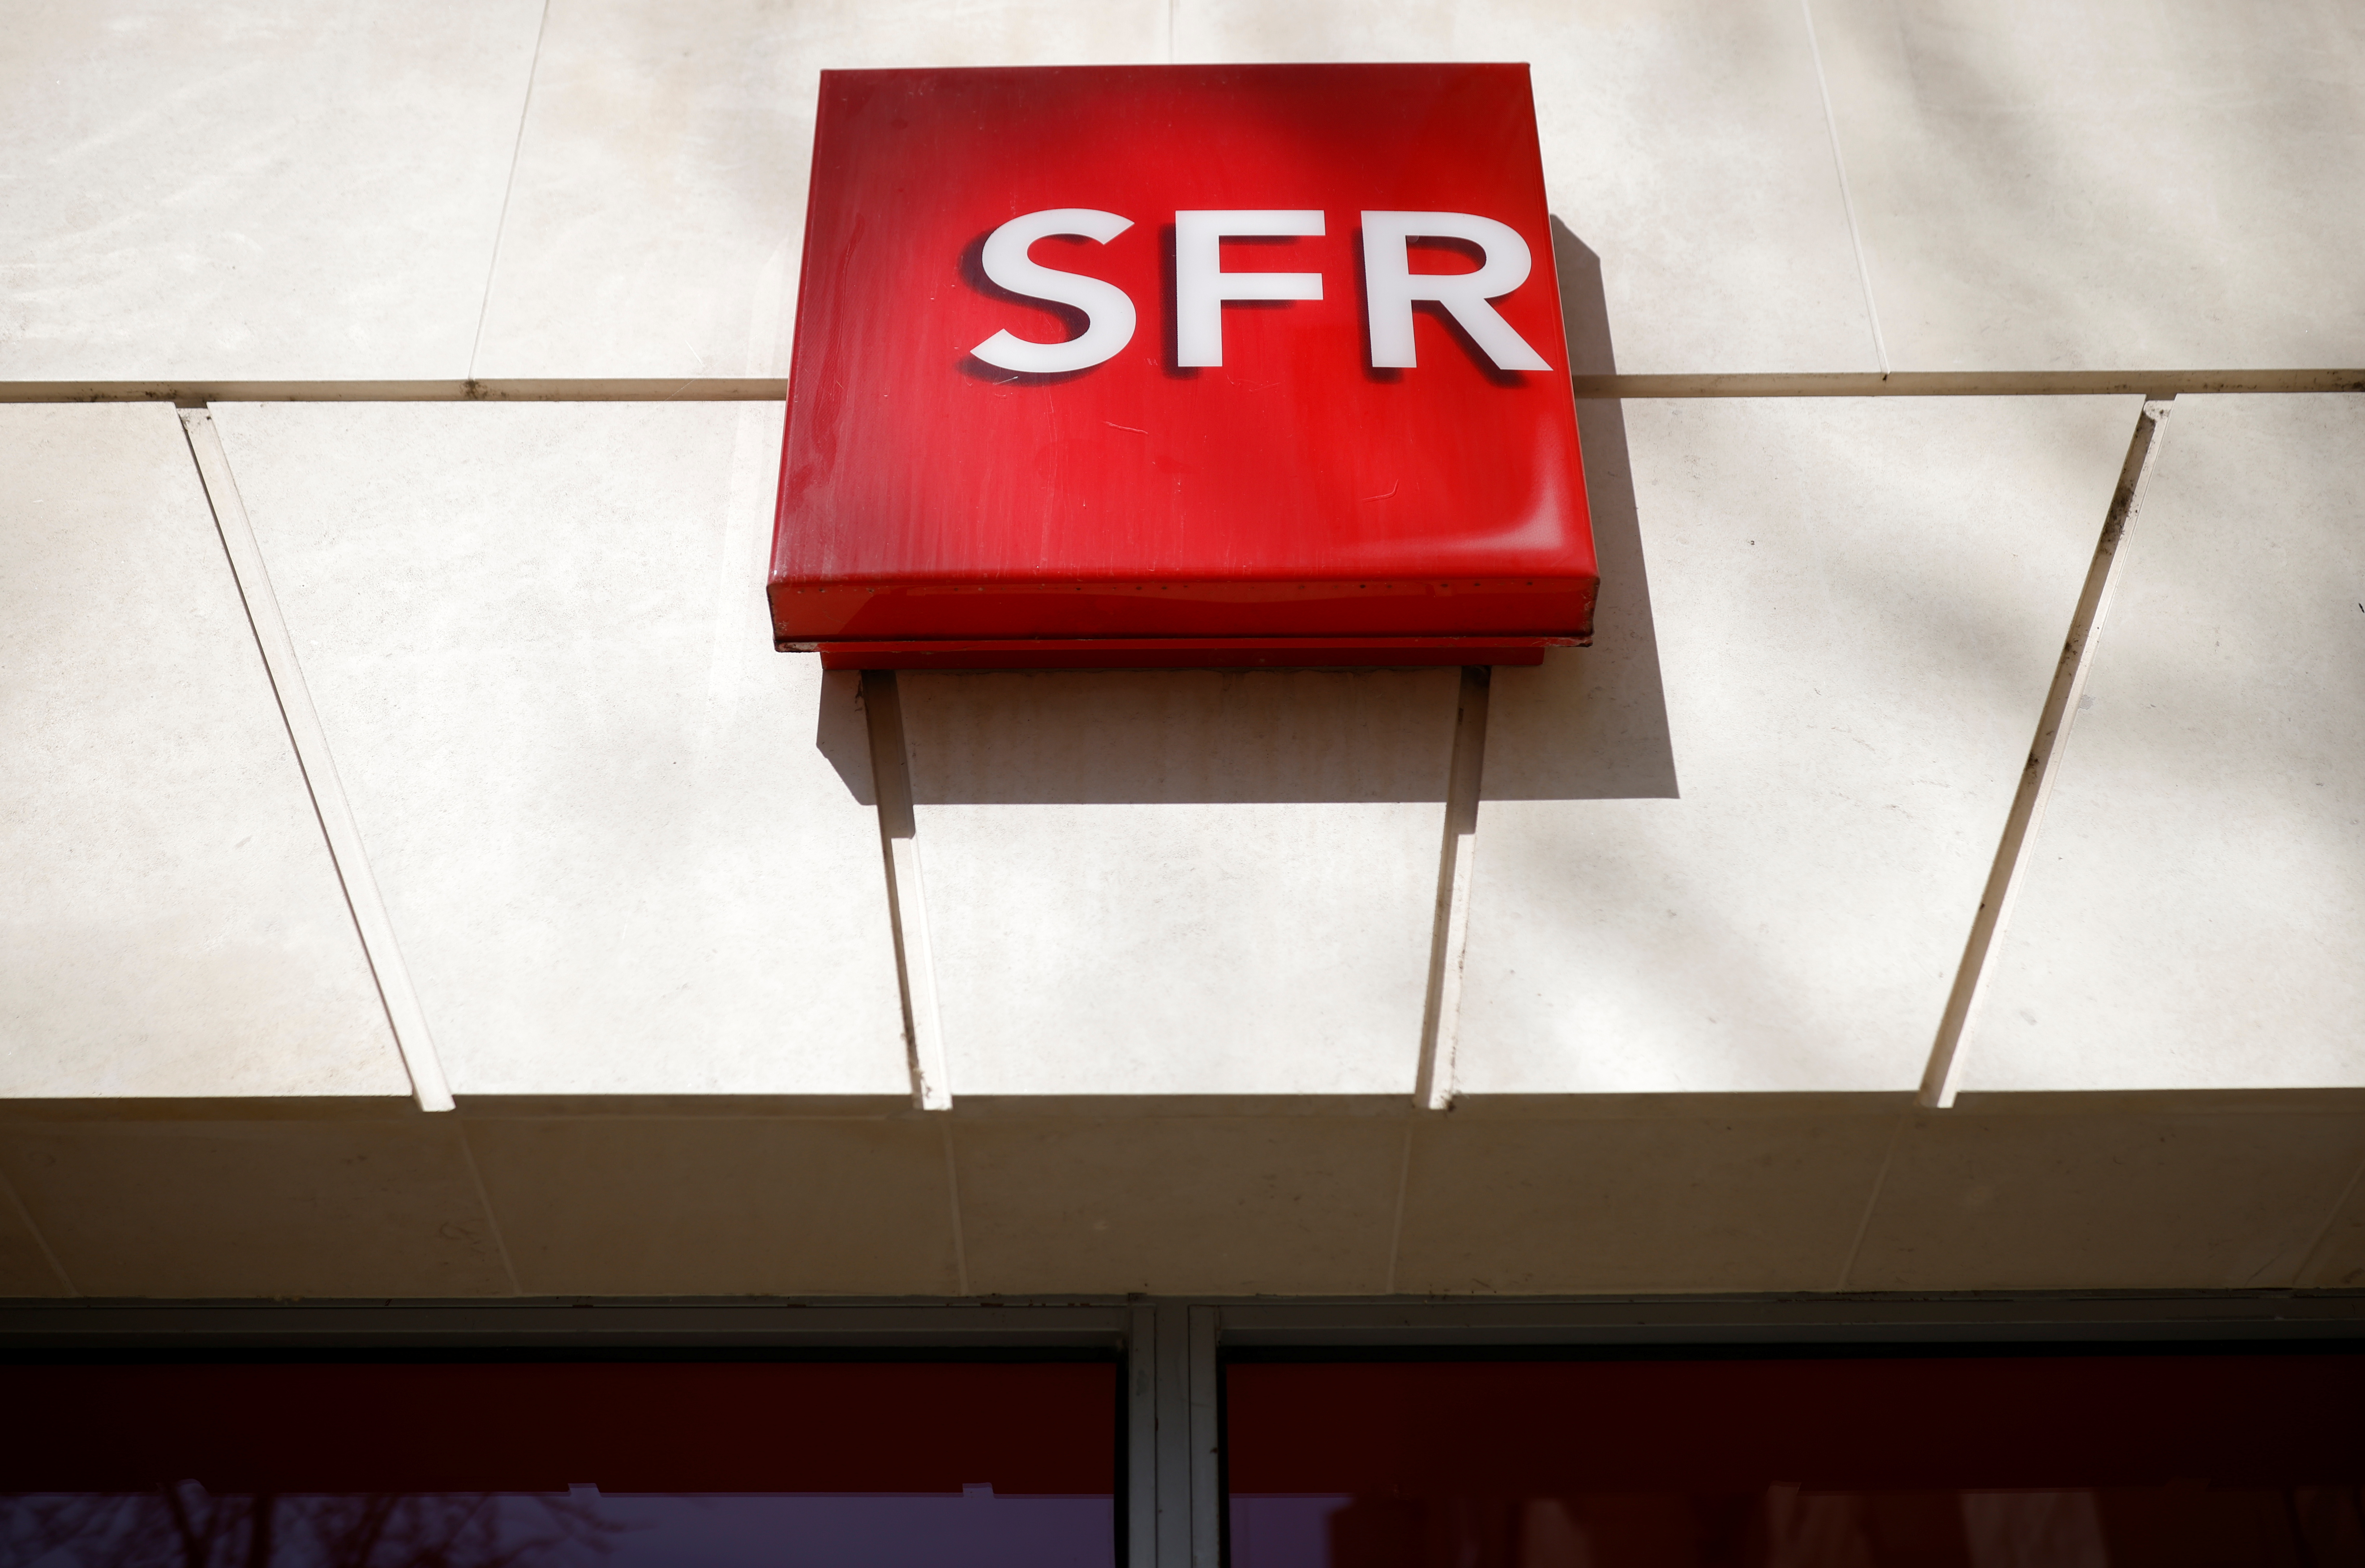 The logo of French telecoms operator SFR is pictured on a shop in Niort, France, March 4, 2021. REUTERS/Stephane Mahe